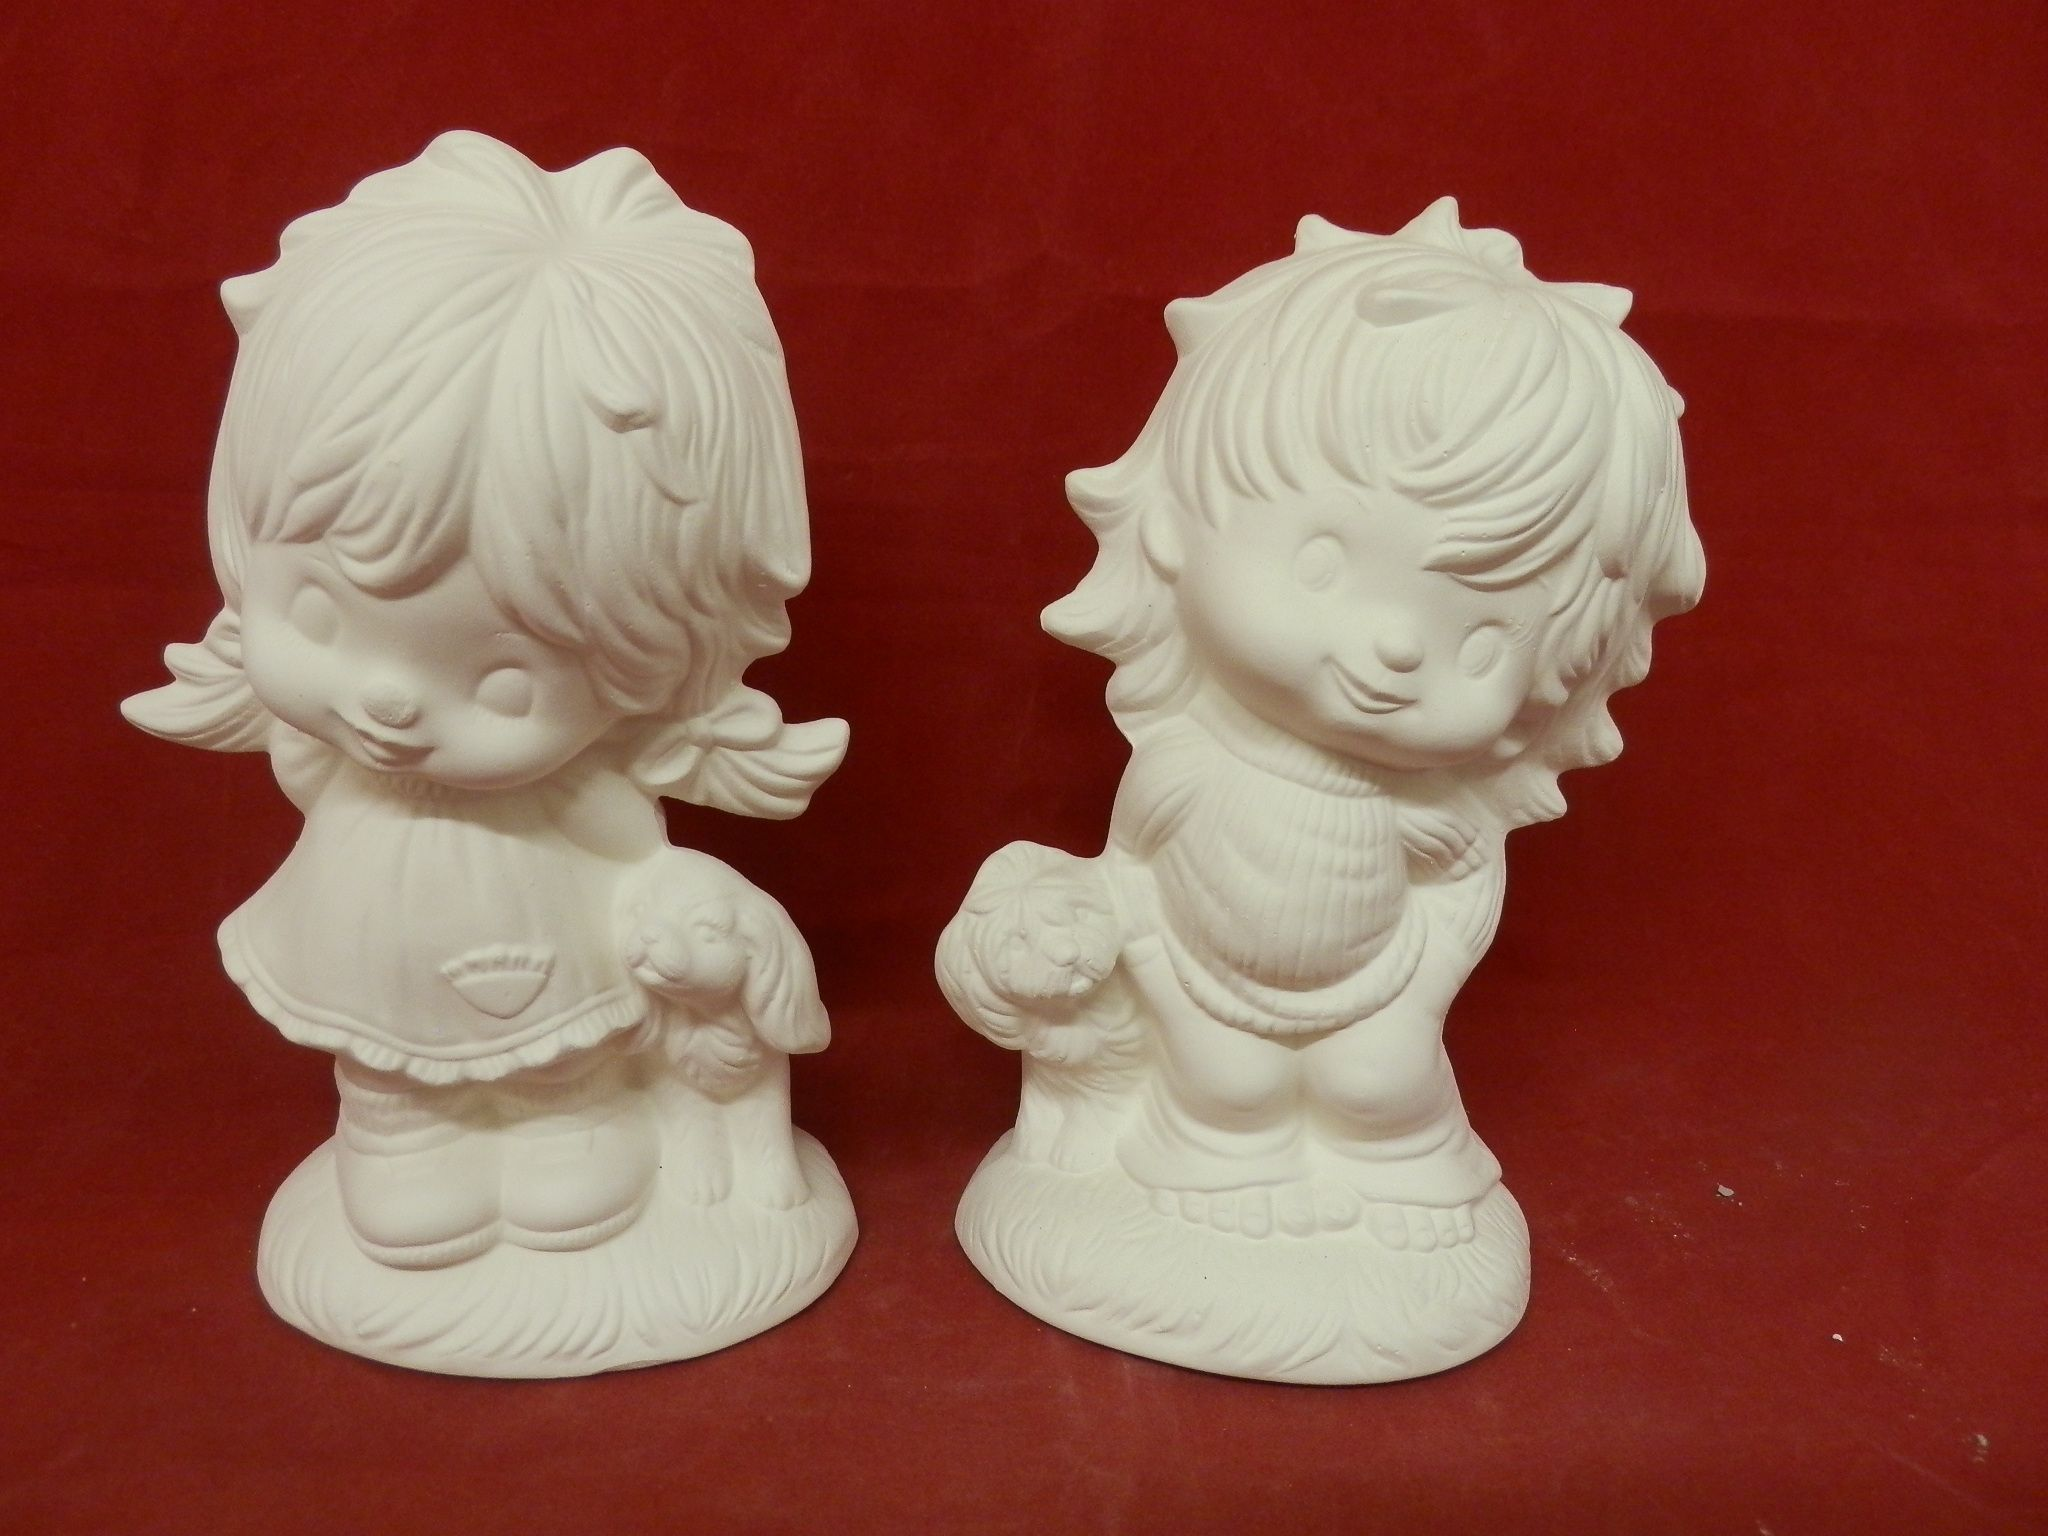 Adorable Barefoot Boy & Girl with dogs * Ceramic Bisque*U-Paint $7.99